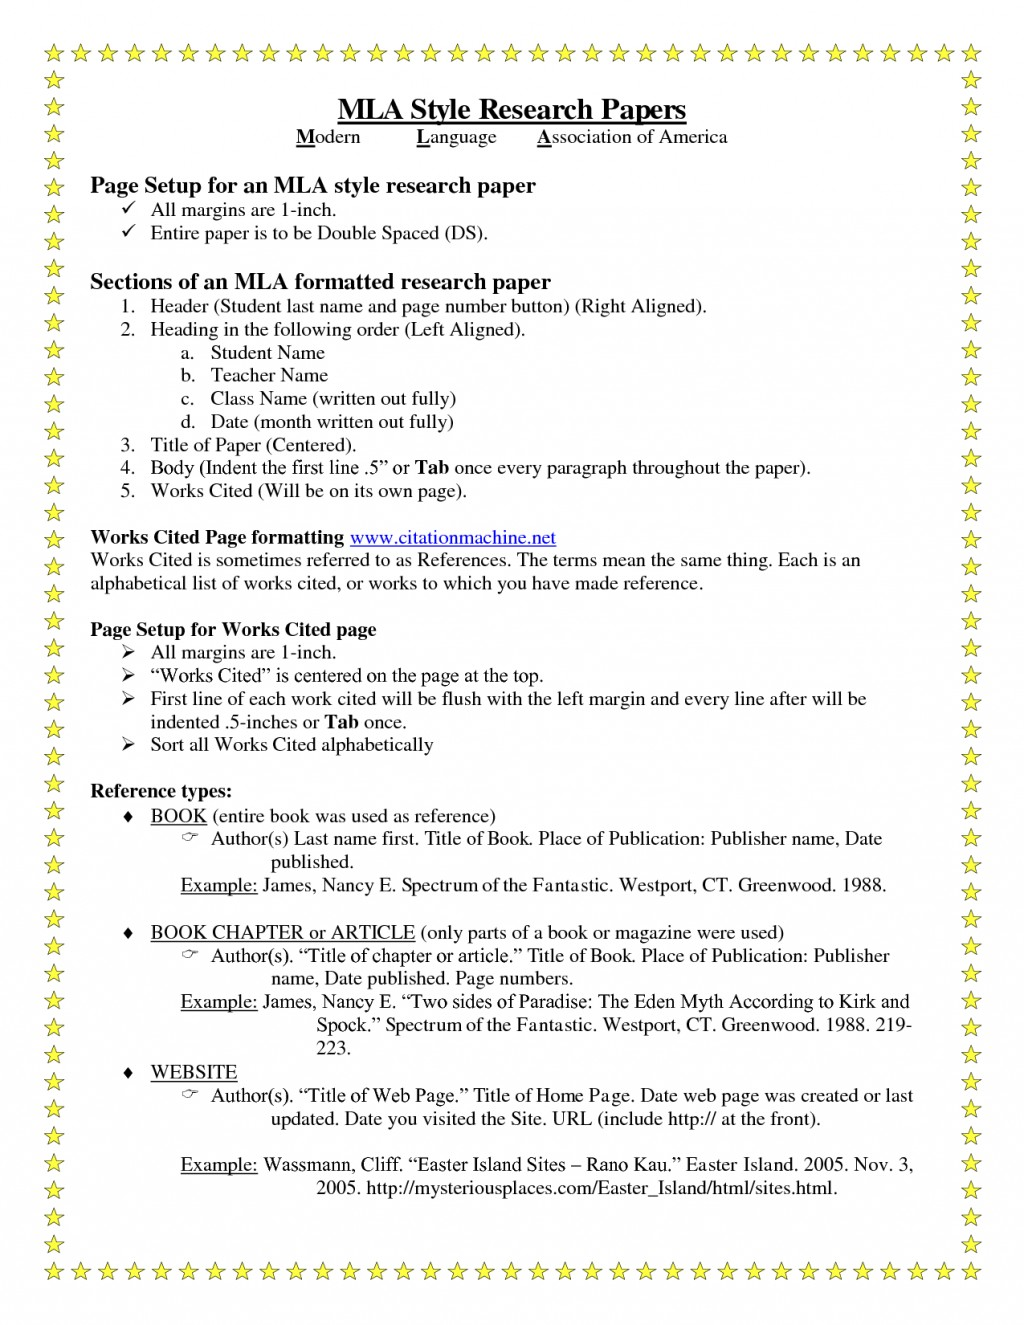 002 Research Paper Order Of Headings In Impressive Writing A Correct Sequence Steps For Large